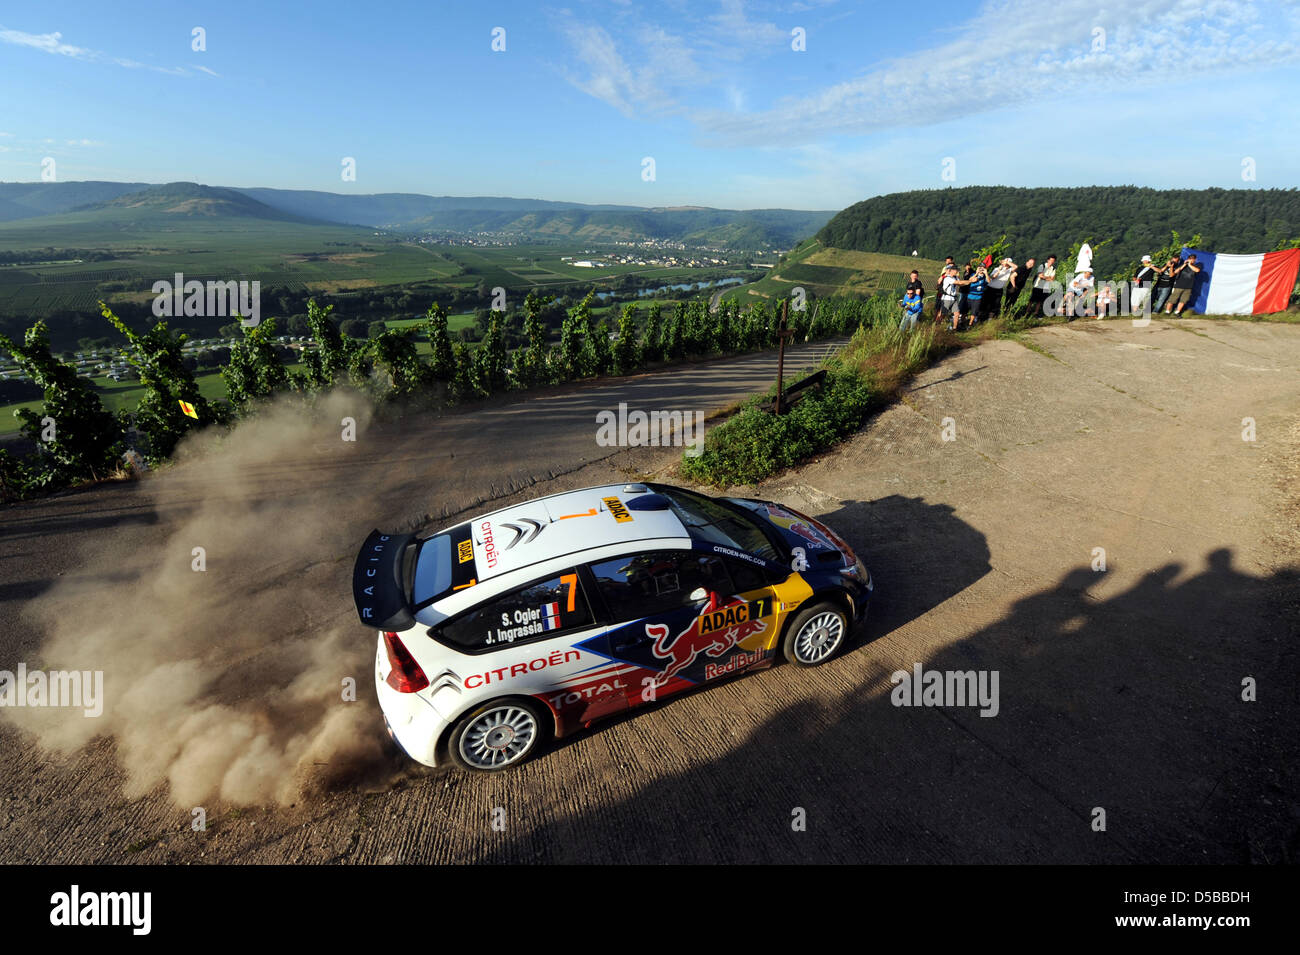 French Sebasien Ogier and co-driver Julien Ingrassia drift in their Citroen C4 WRC in the Mosel vineyards during - Stock Image